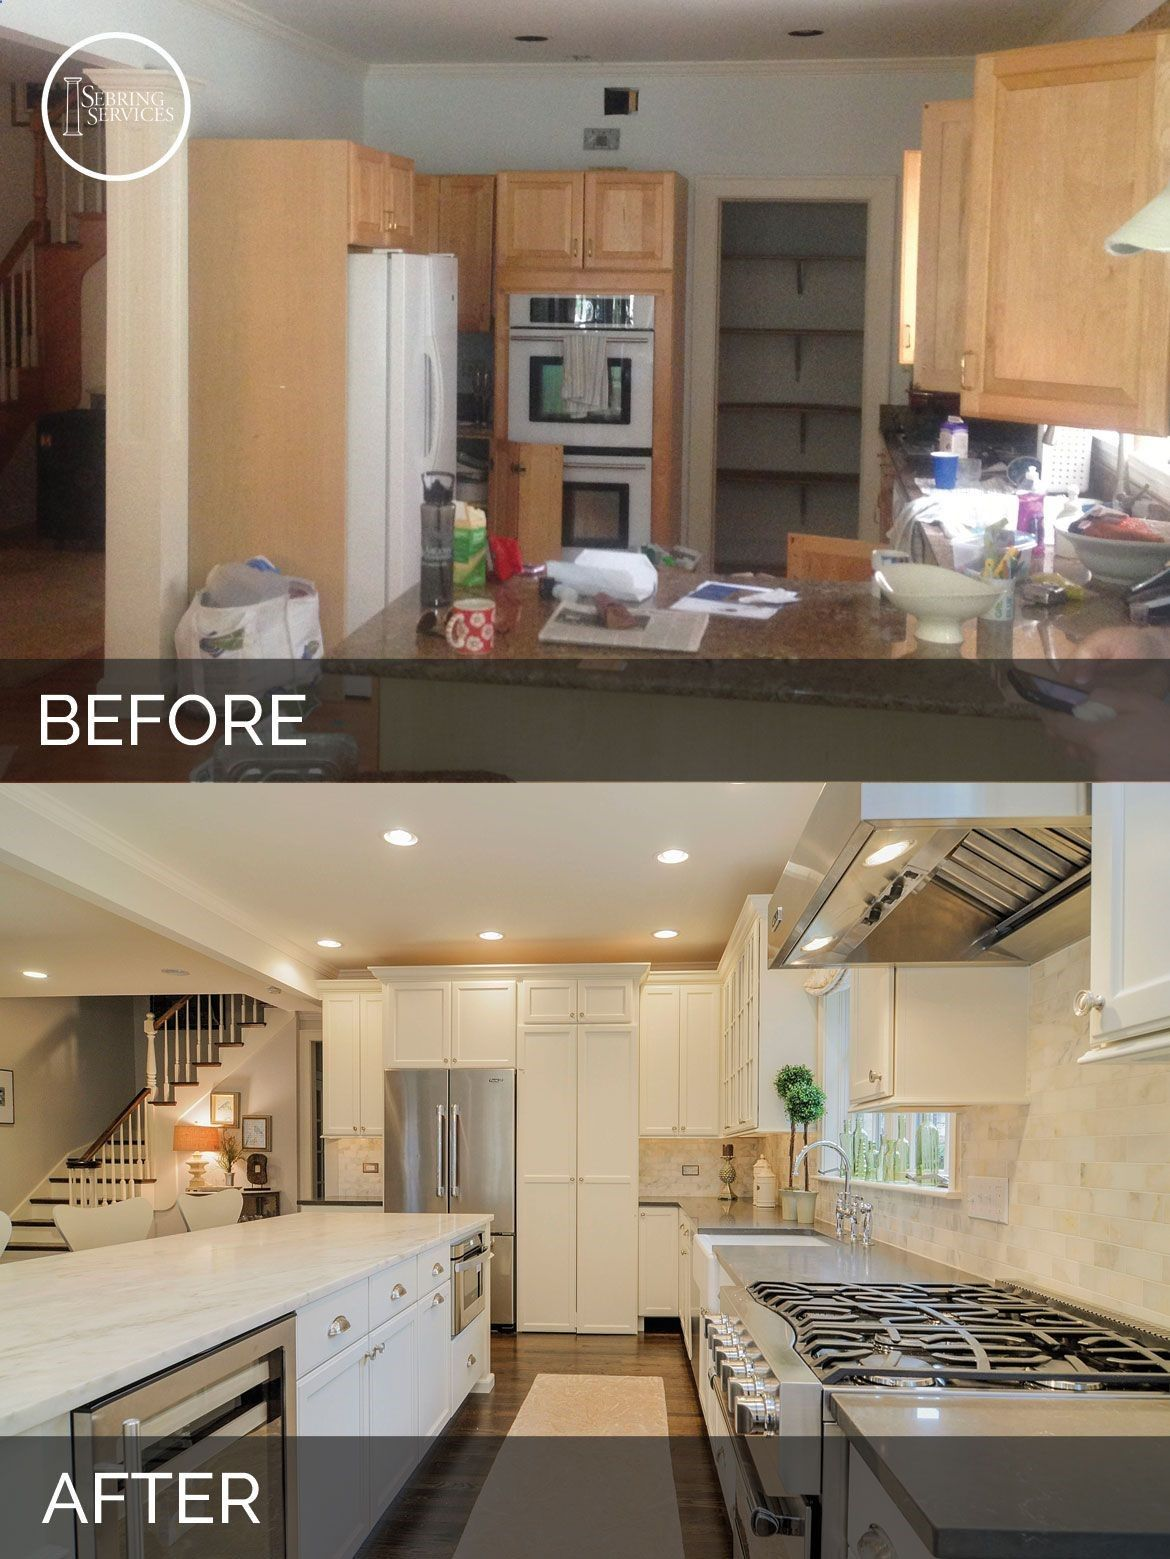 Before and After Kitchen Remodeling - Sebring Services   16.000 ...